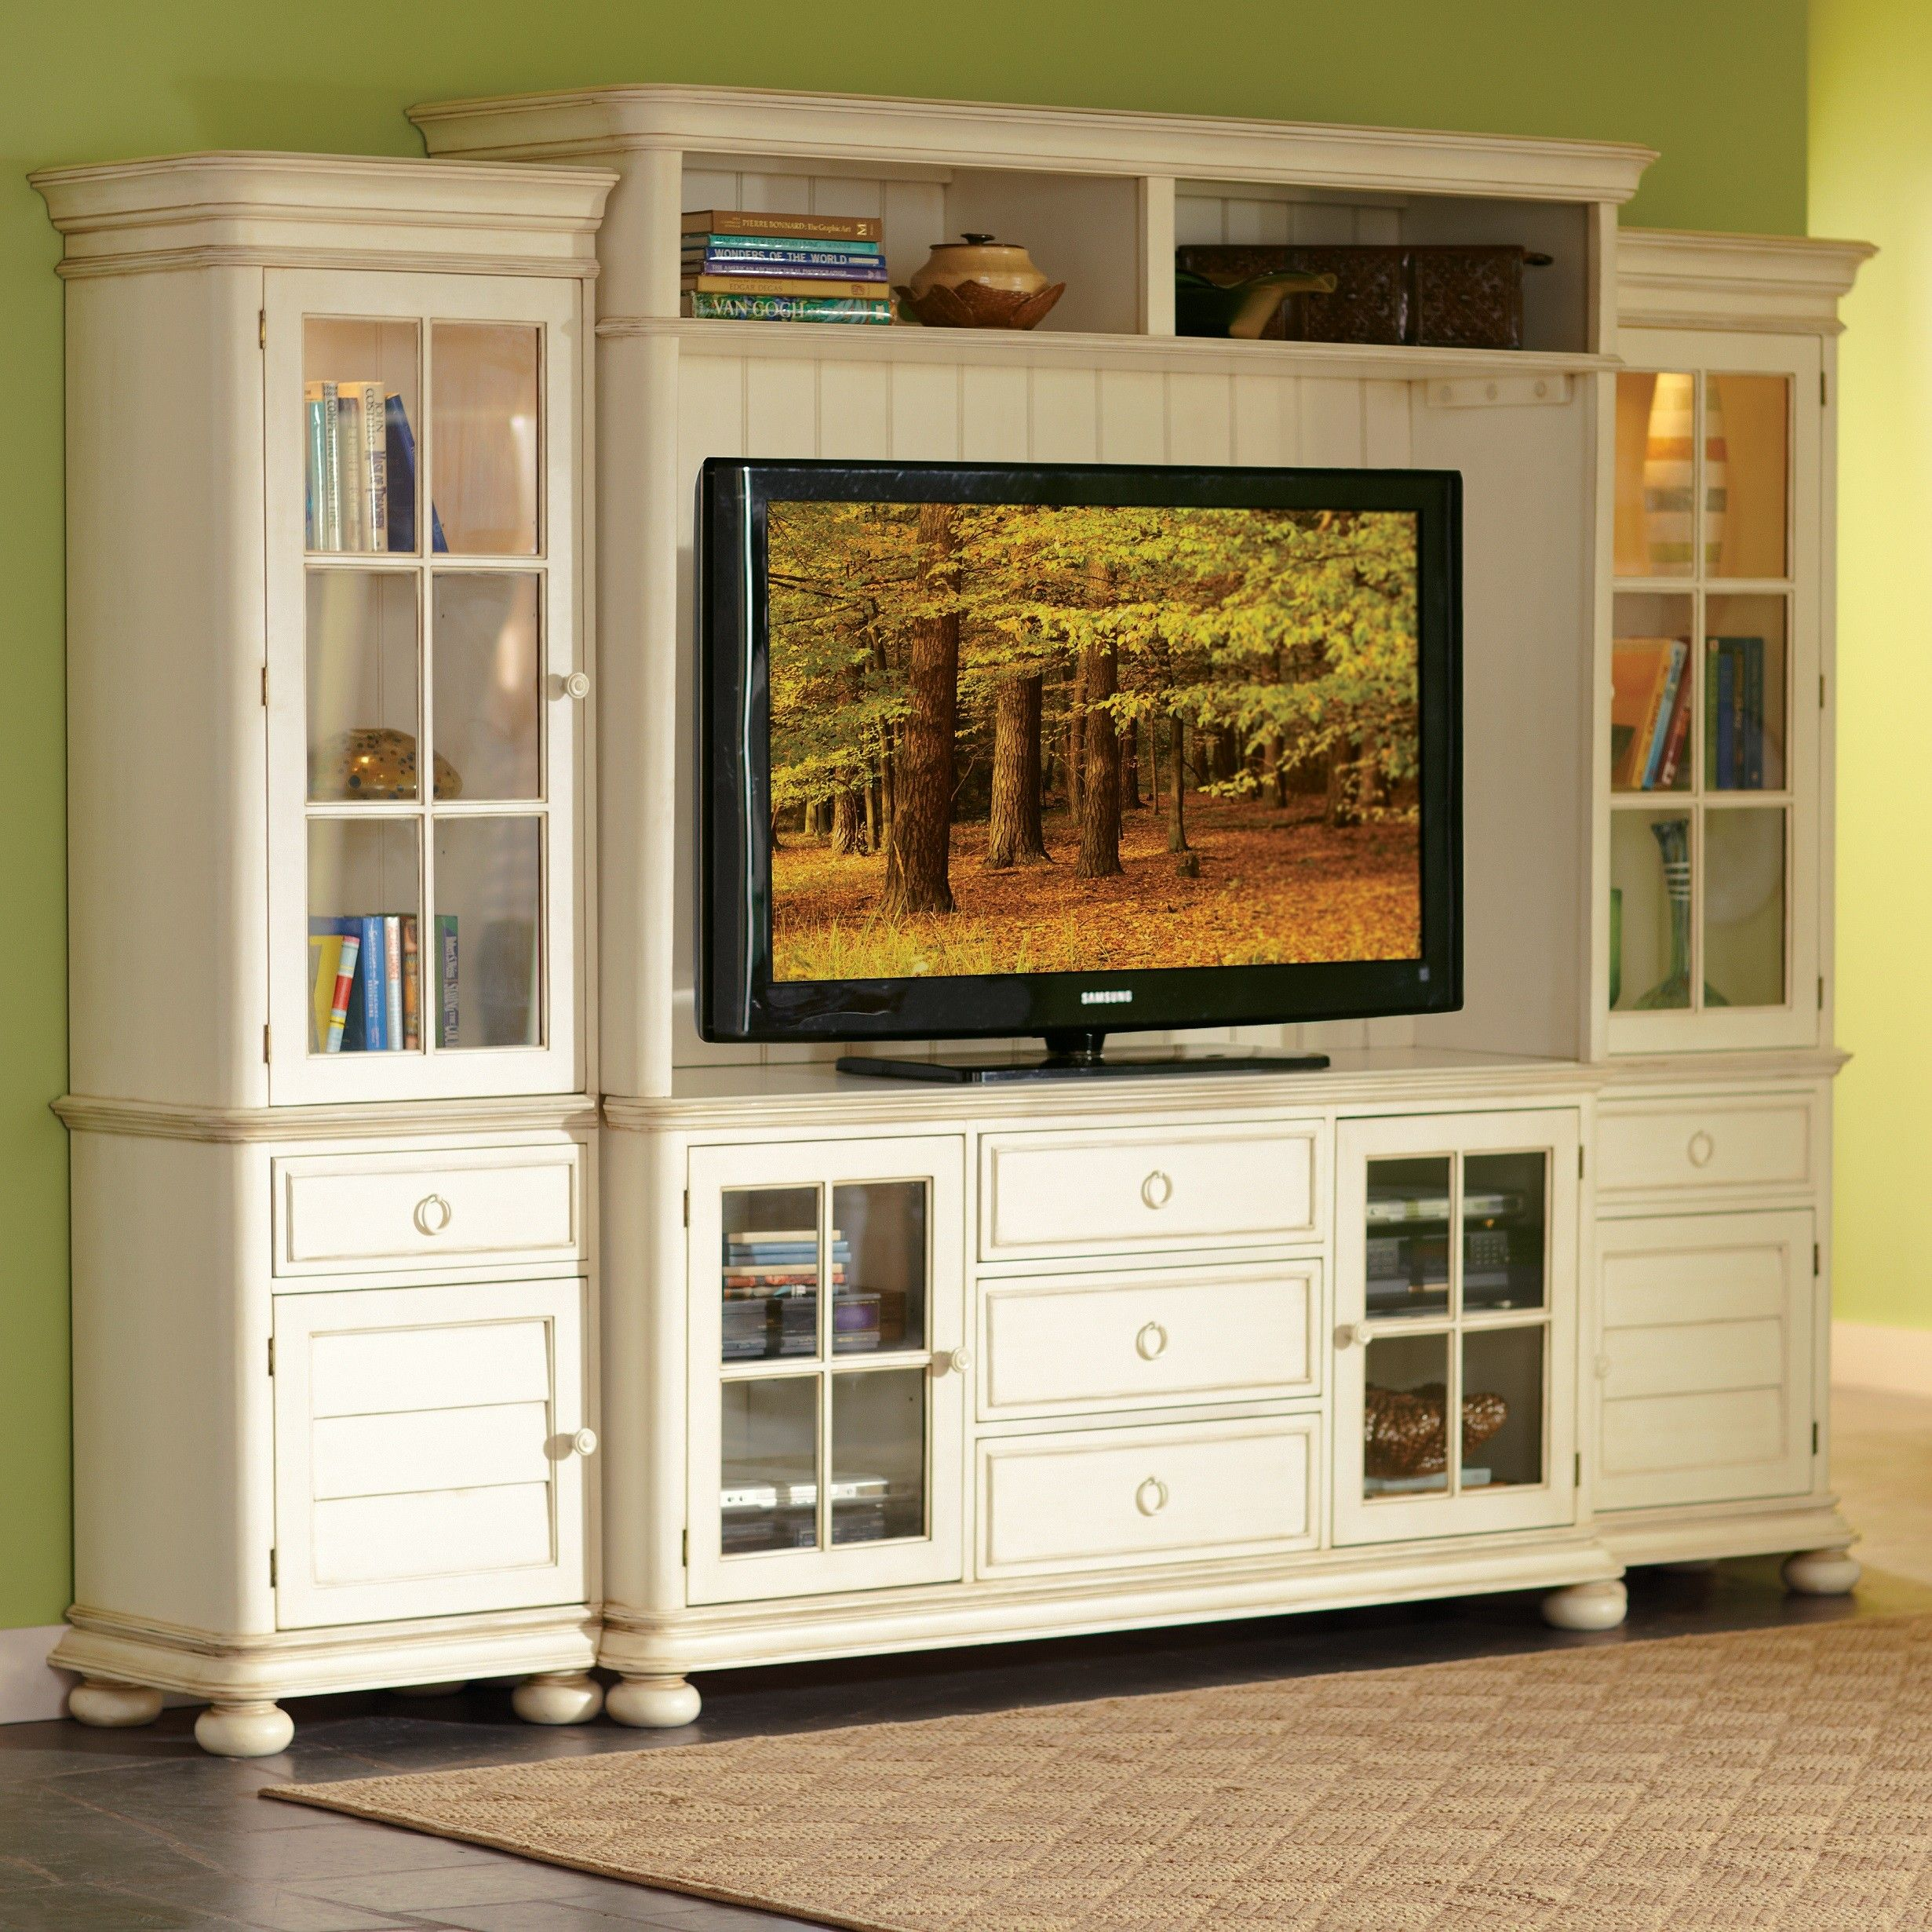 Tv Cabinet Adelaide Image Result For Front Room Built In Tv Cabinets Built In